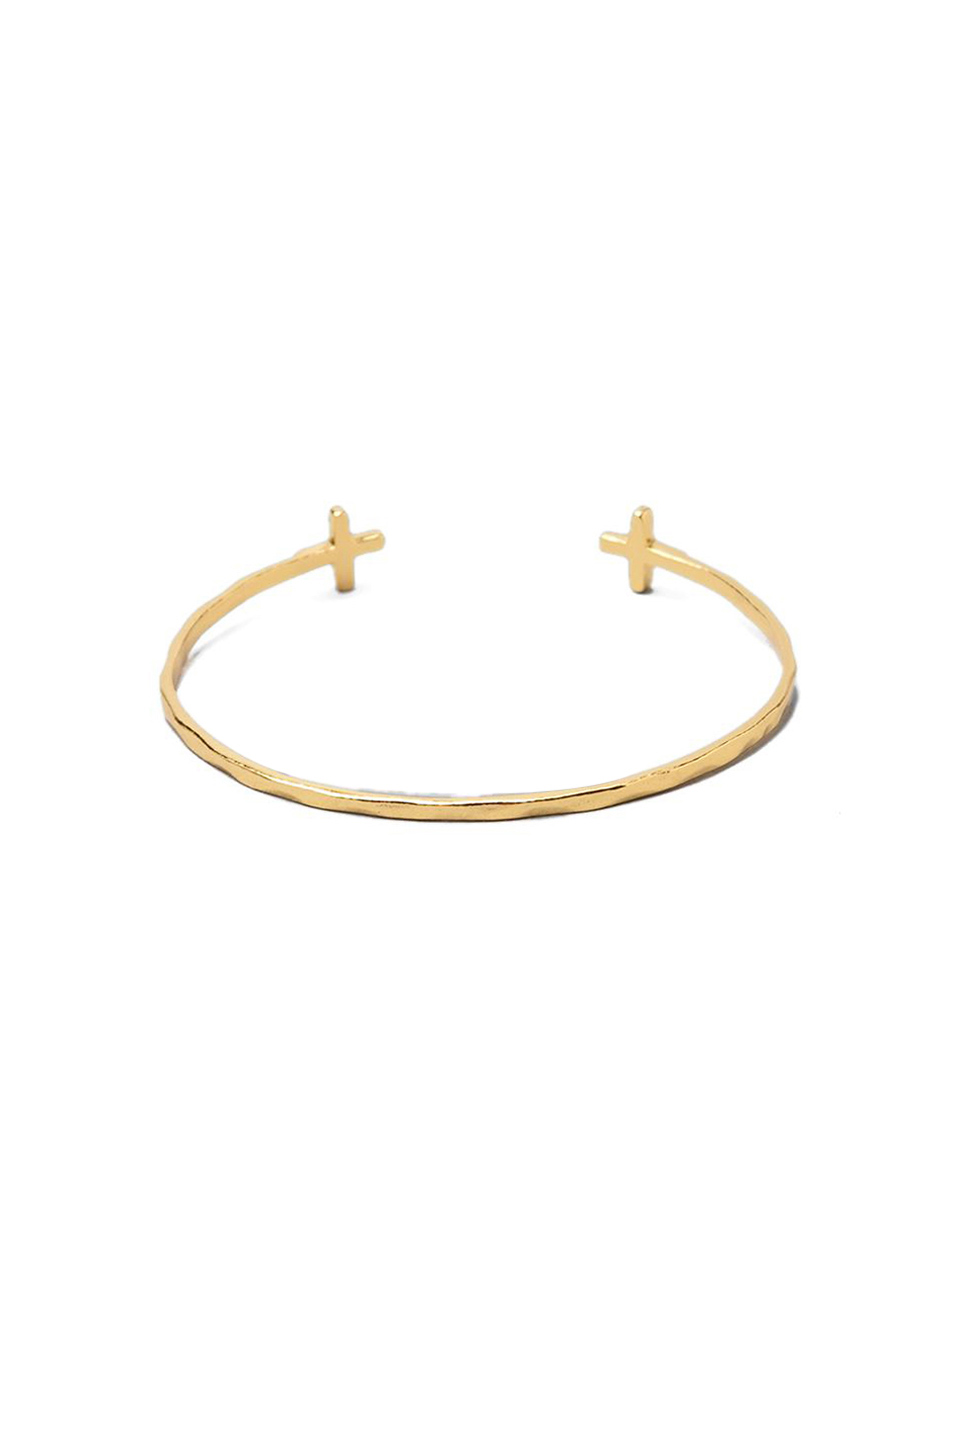 gorjana Cross Over Cuff Bracelet in Gold